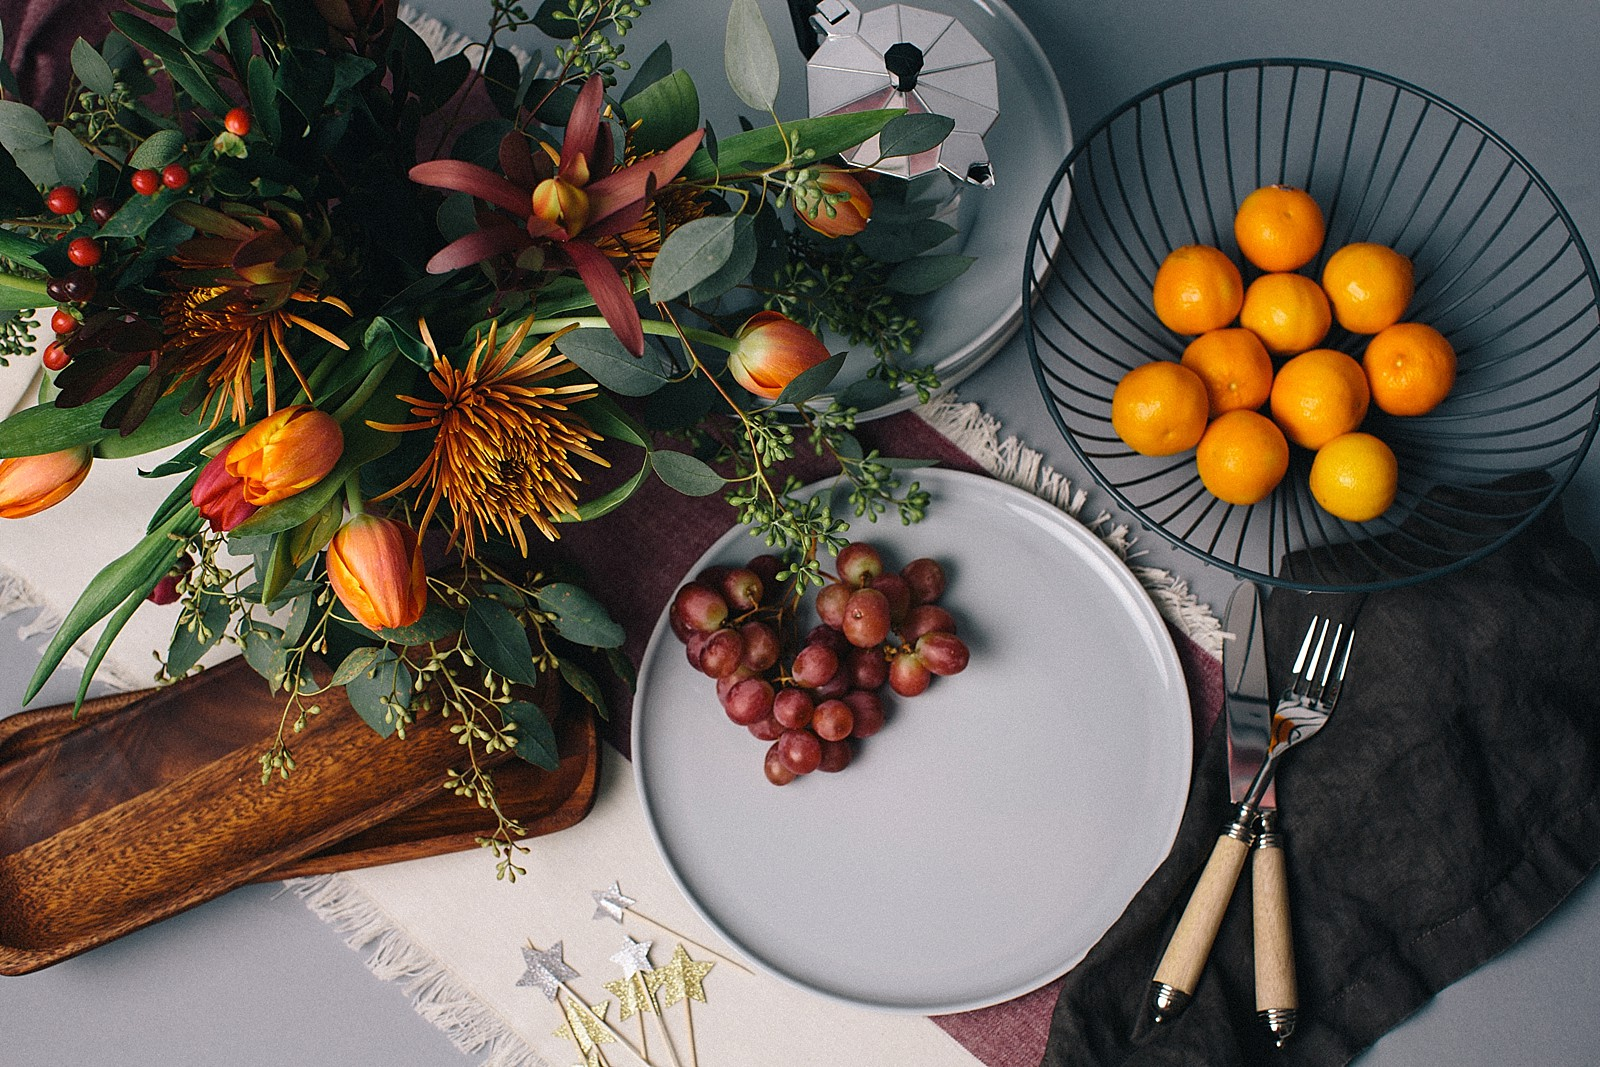 pro-flowers-burke-decor-thanksgiving-christmas-tablescape-idea-fall-popsugar-must-have-box-lifestyle-blogger-diana-elizabeth-blog-2203